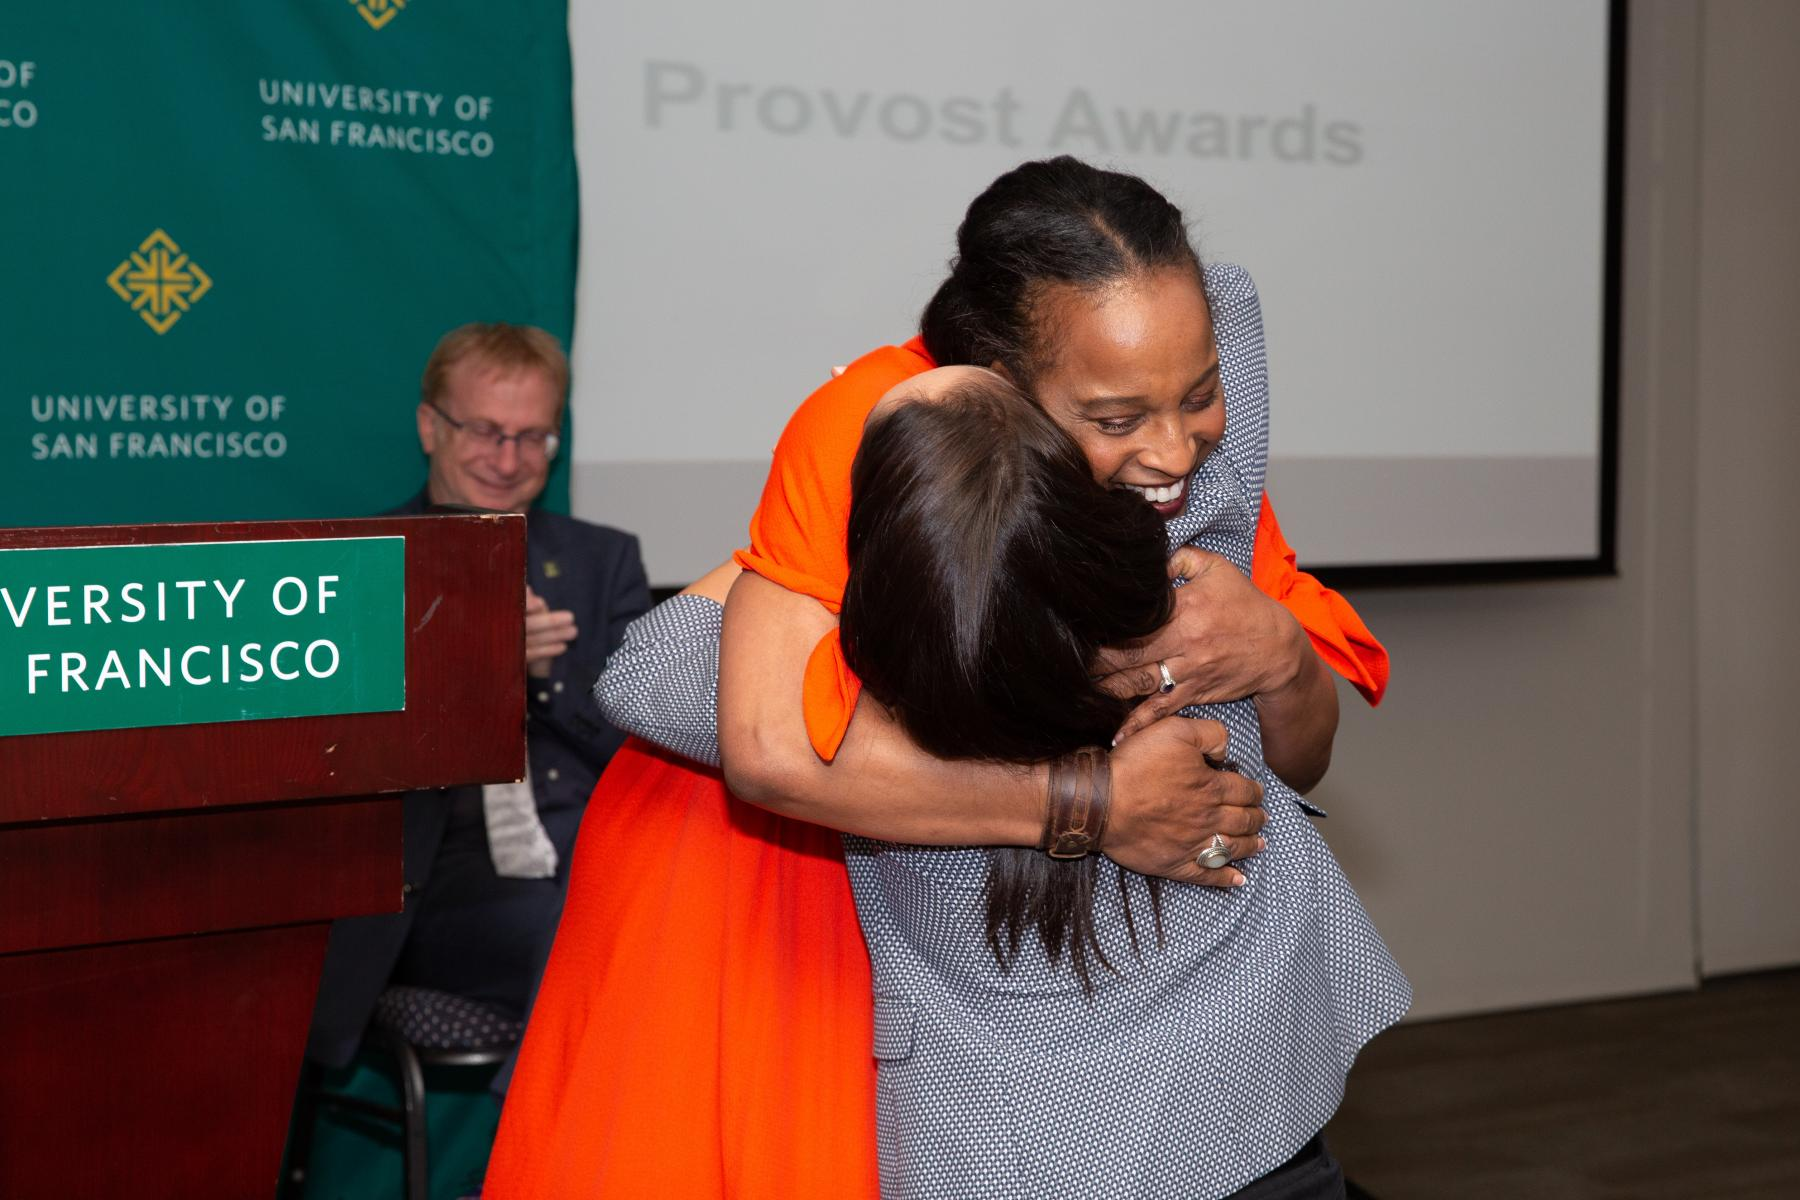 Dr. Mary J. Wardell-Ghirarduzzi hugging Dr. Daniela Dominguez during the 2019 Service and Merit Awards.